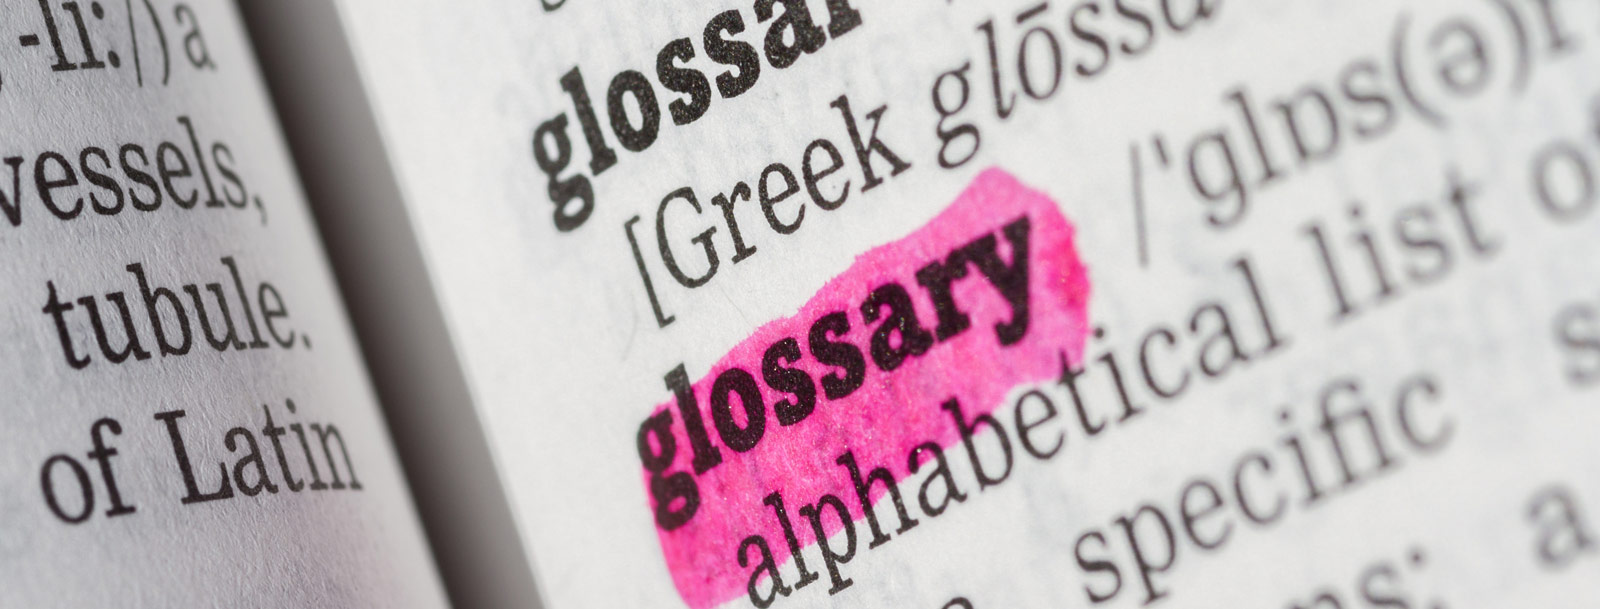 A glossary to help you understand the terminology at the senior living in Topeka